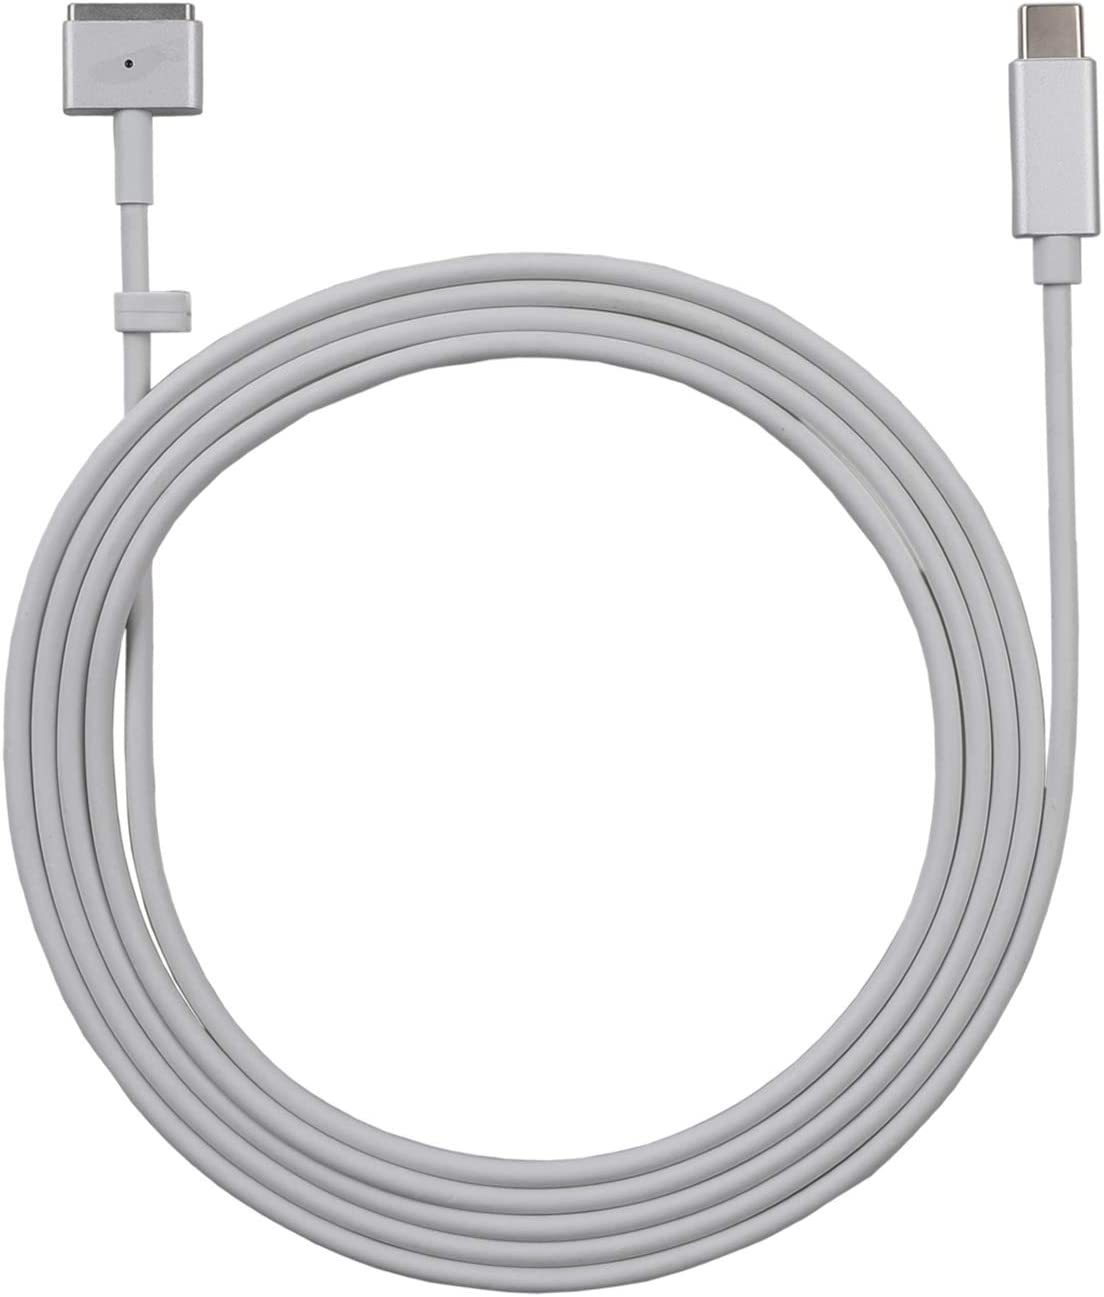 cable de carga macbook pro air (ver imagenes del cargador)